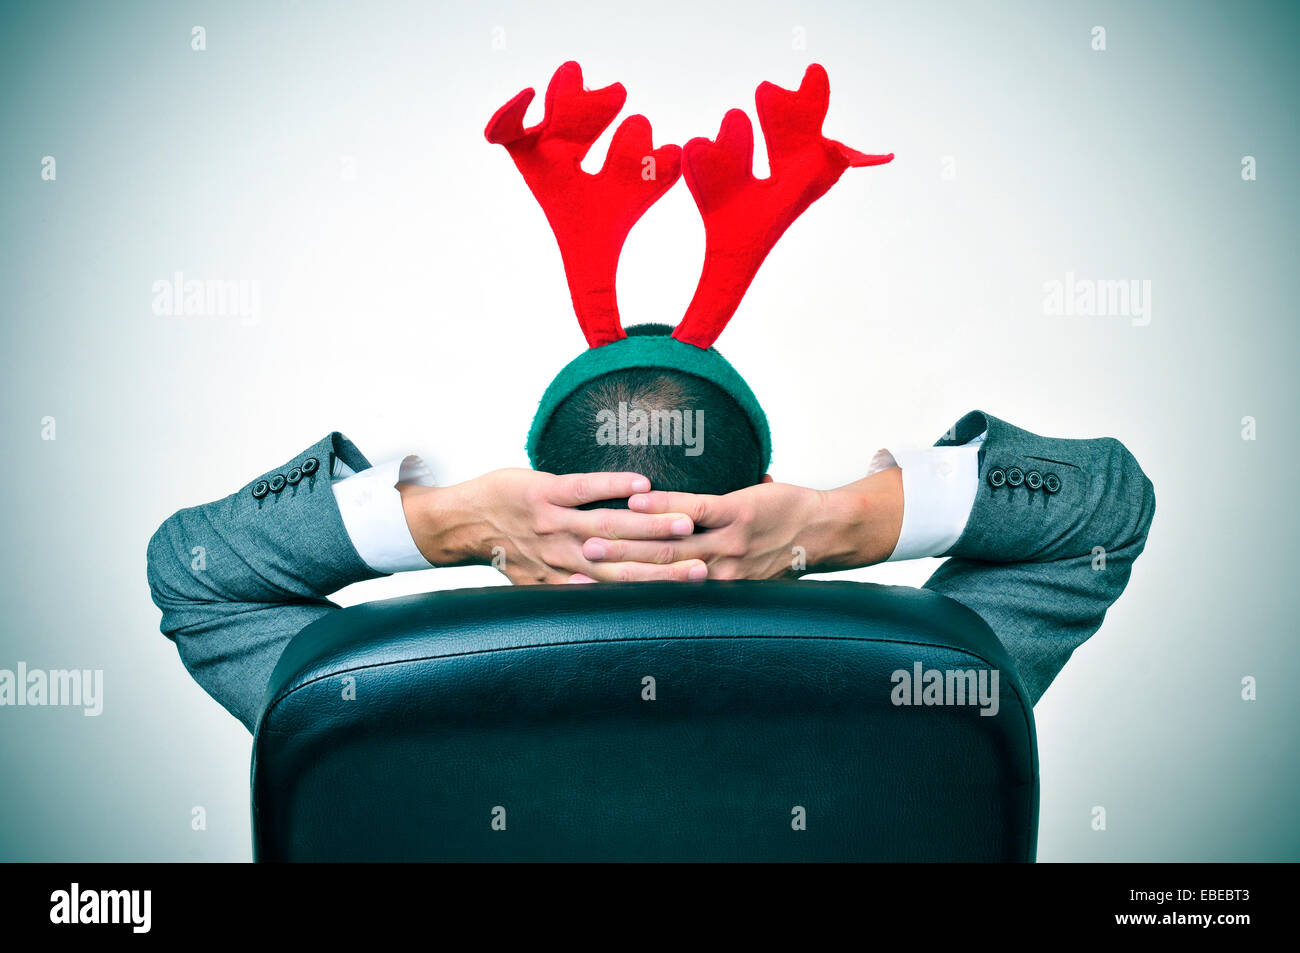 a man with a reindeer antlers headband relaxing in his office chair after an office christmas party - Stock Image